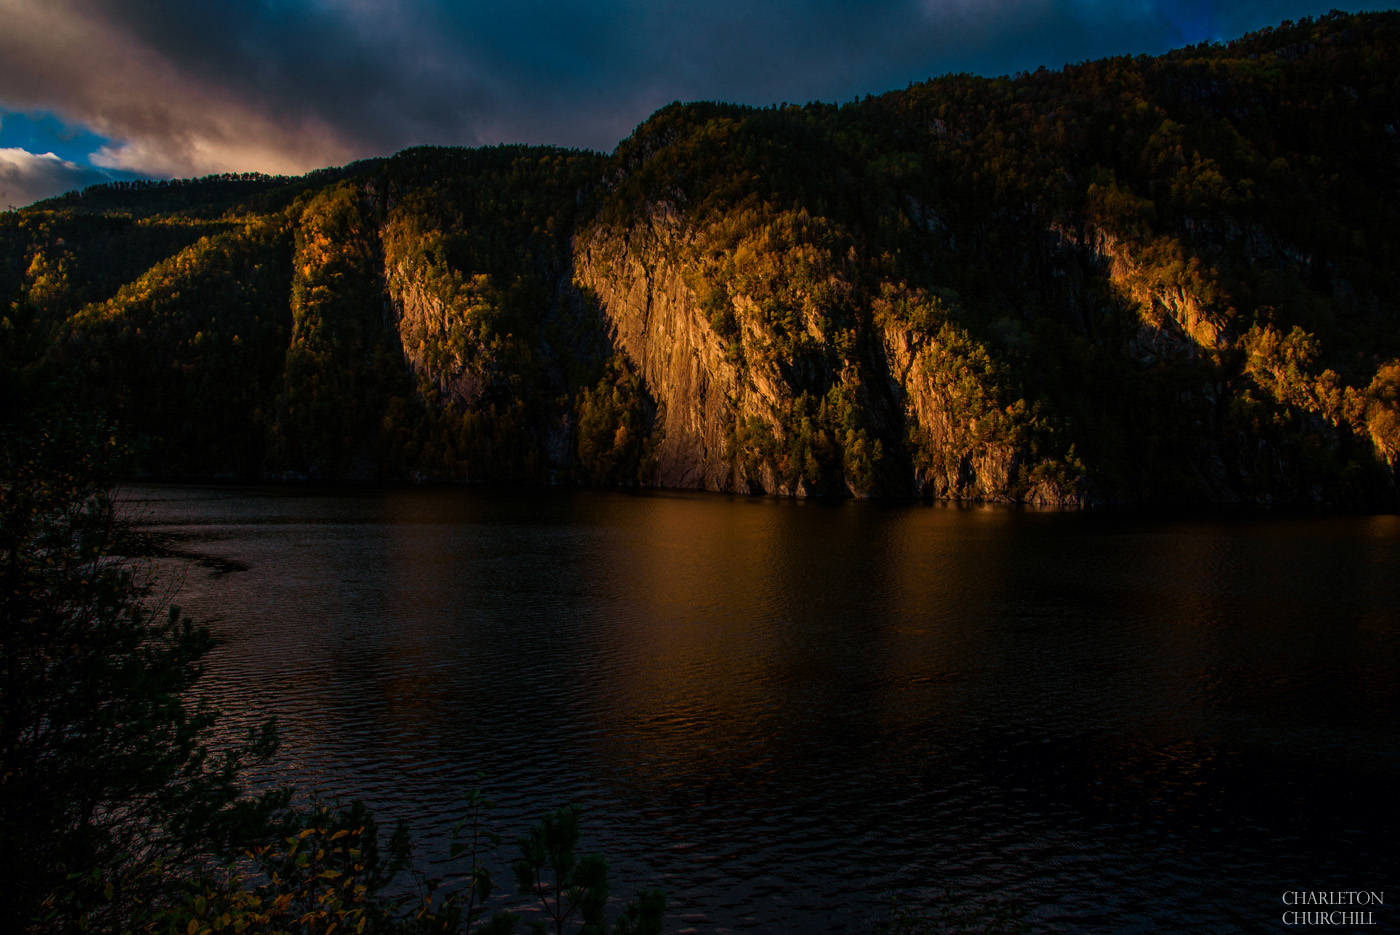 norway beautiful landscape photos when the sun is going down in the fall season